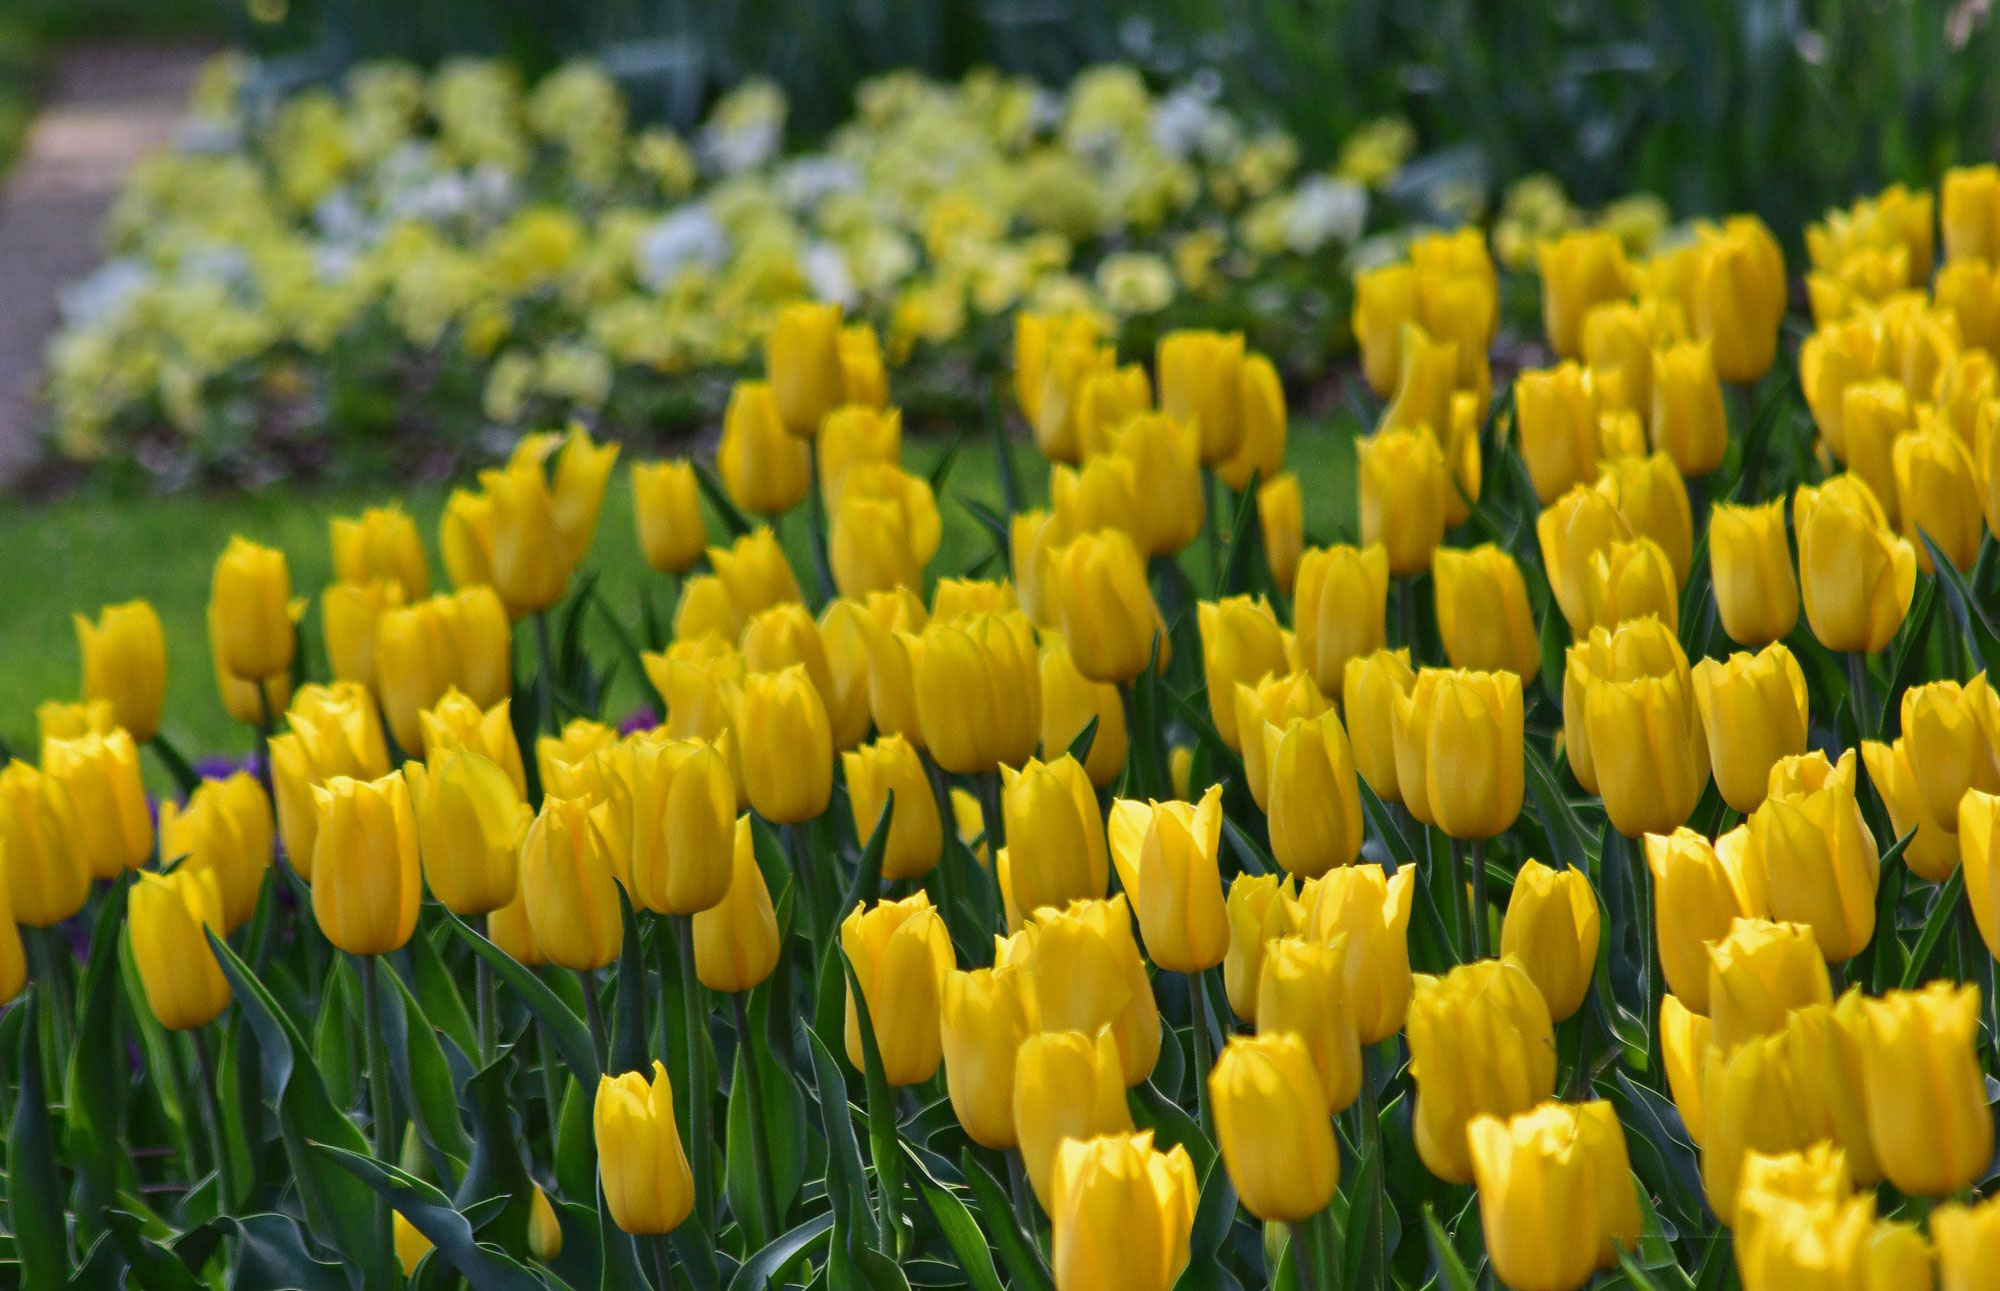 Dozens of yellow tulips protruding from garden bed